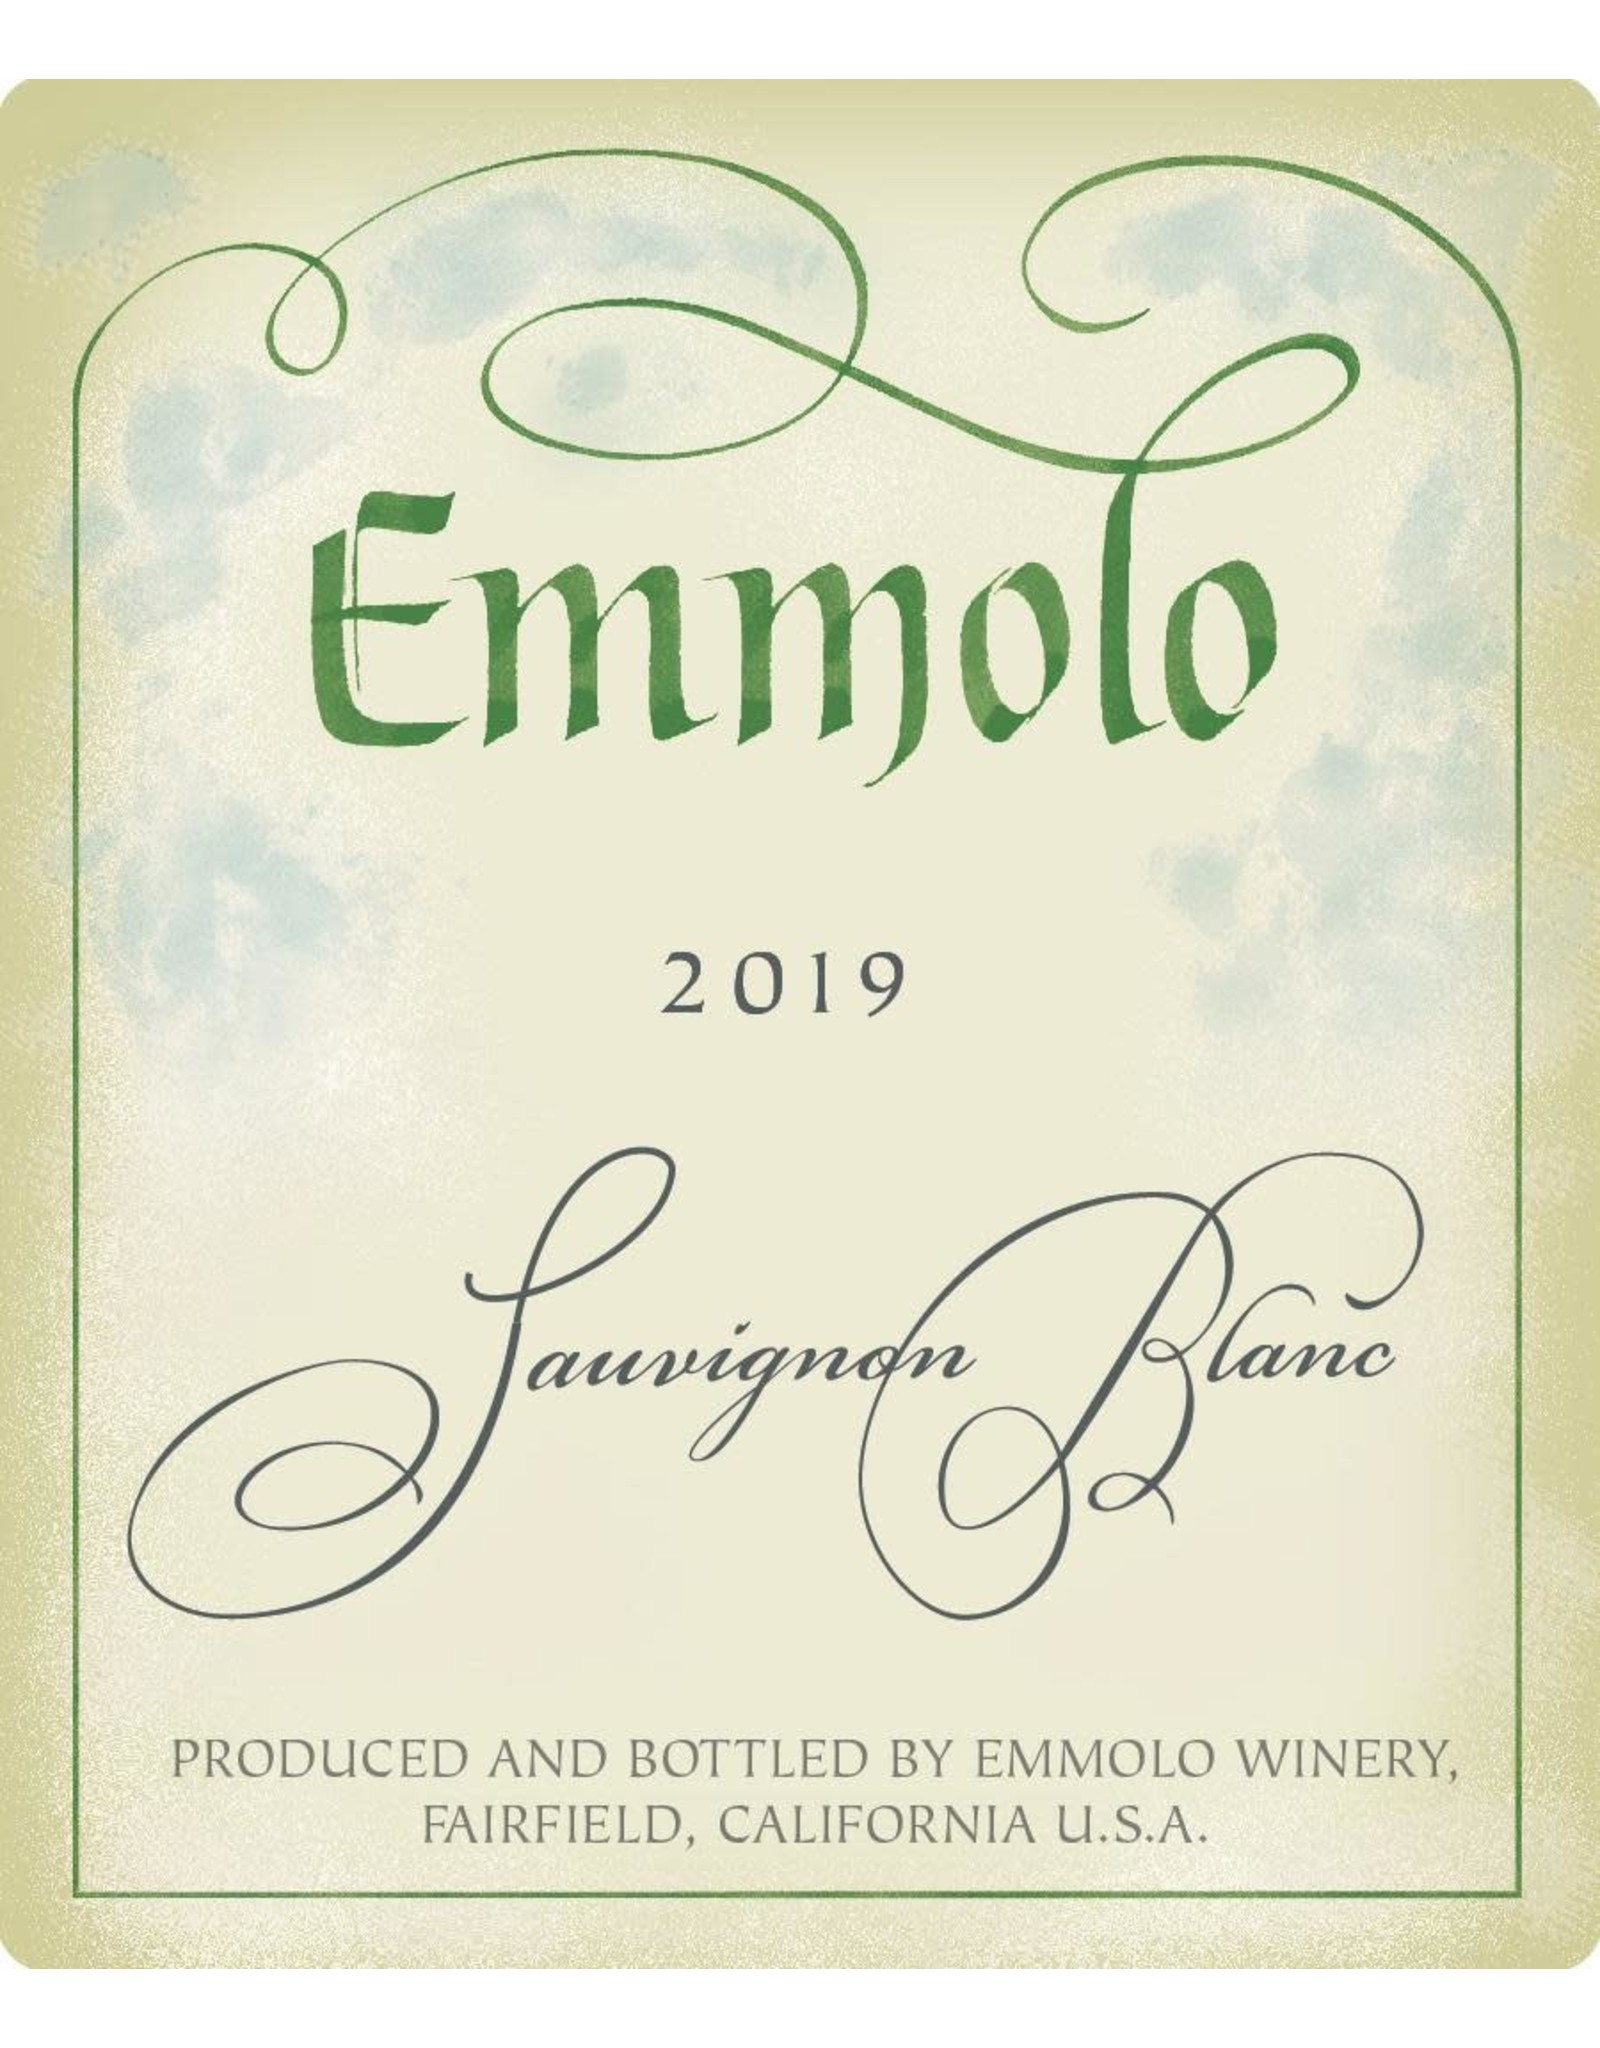 Wagner Family of Wines Emmolo Sauvignon Blanc (2019)